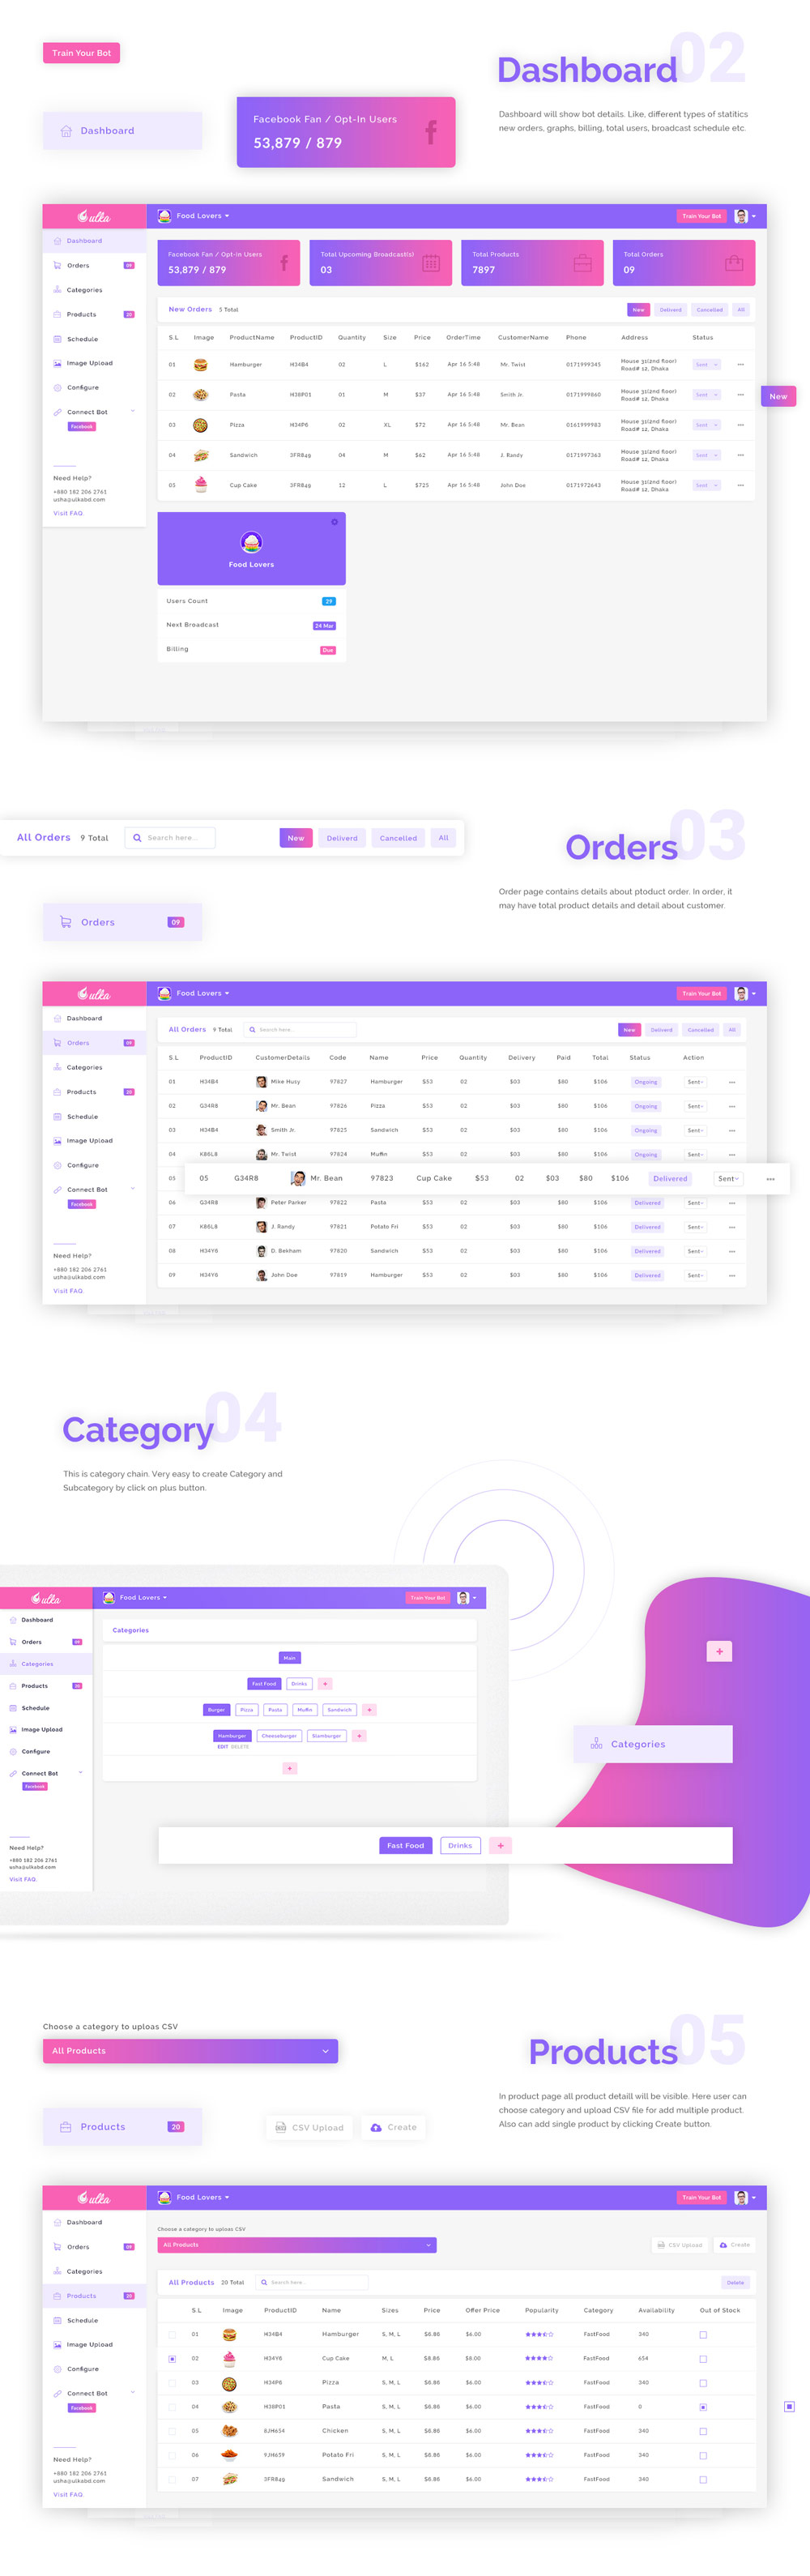 Chatbot Dashboard Design Free PSD (2)